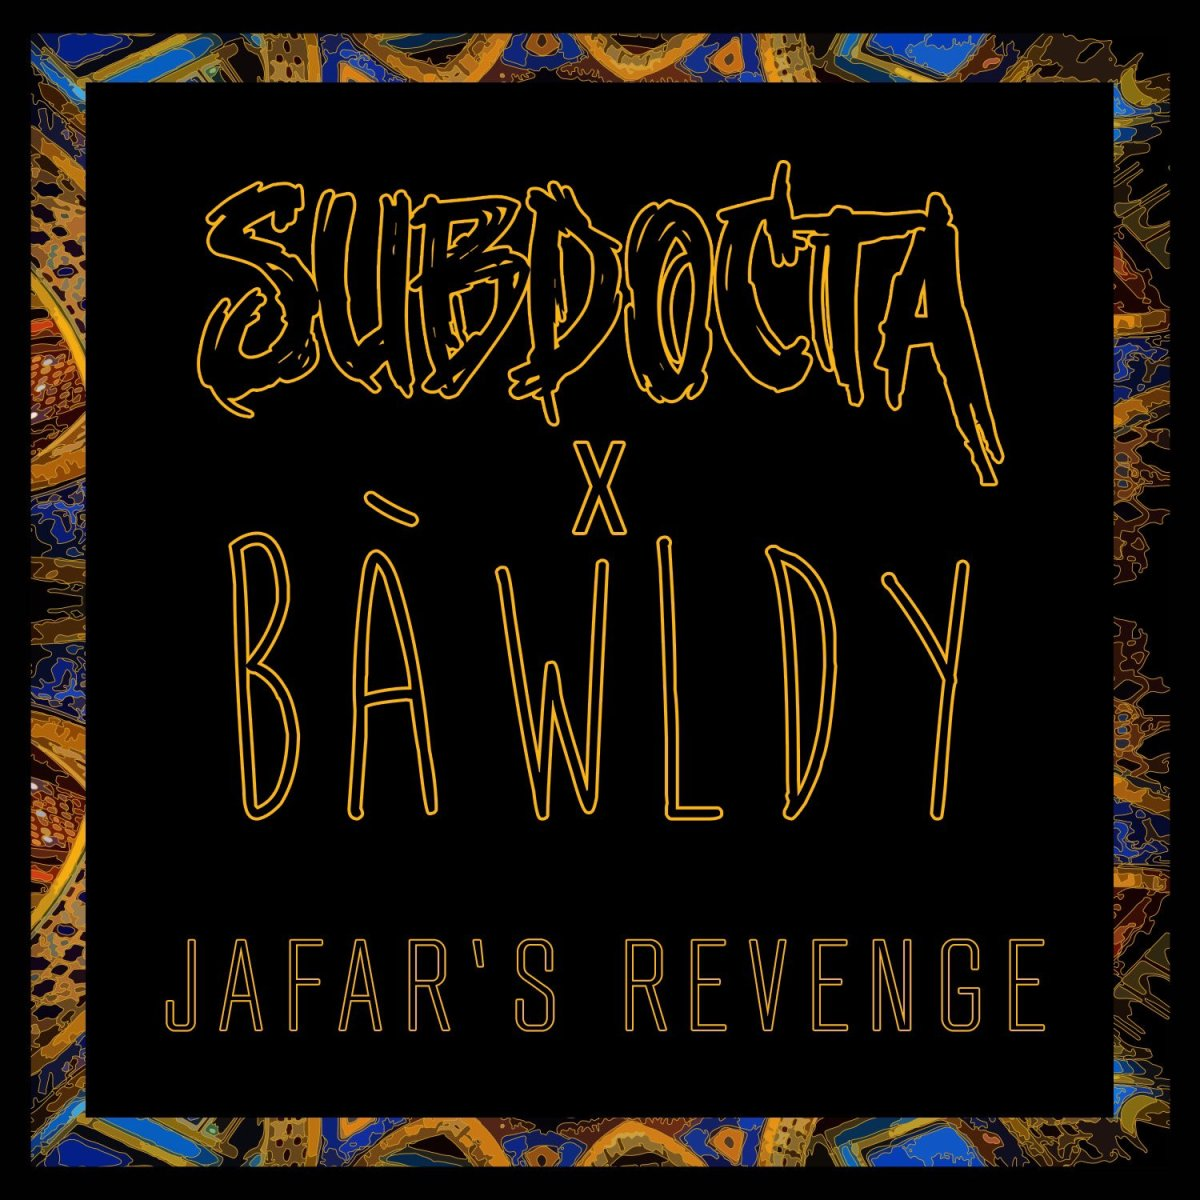 "Subdocta Links Up With Bawldy For ""Jafar's Revenge"""